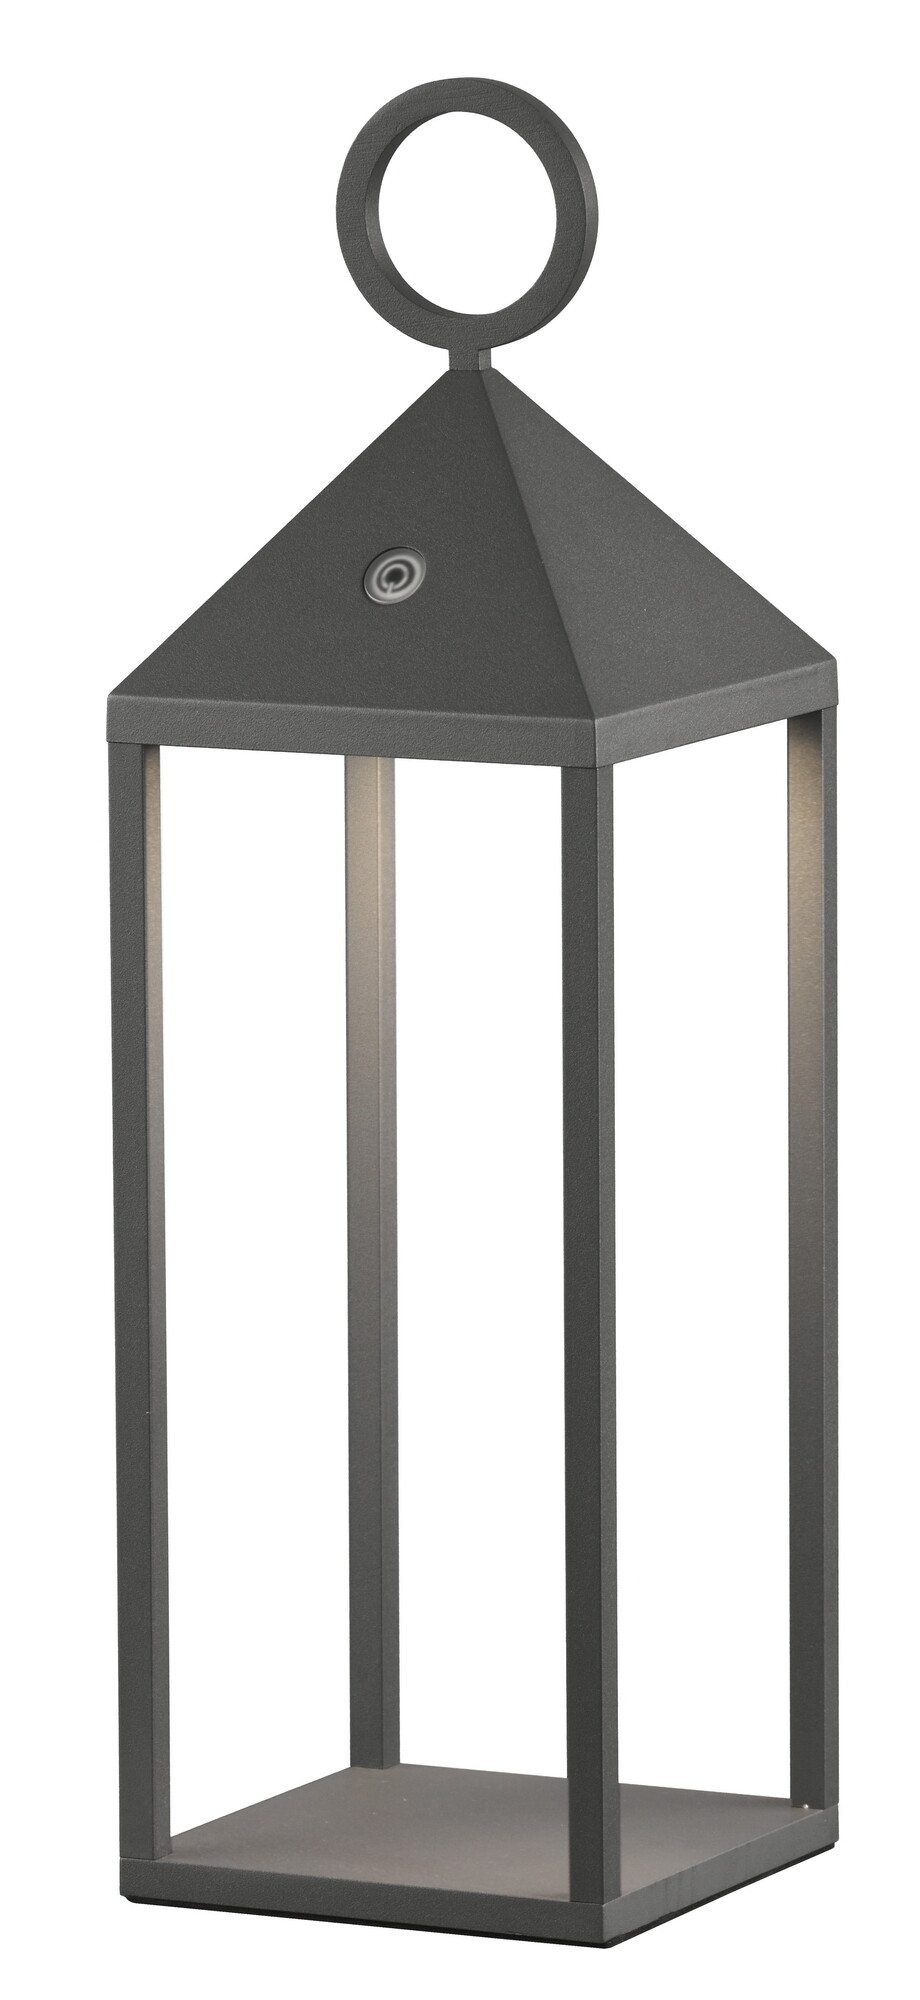 ASTUN Lampe de table LED 1x22W/188lm Gris